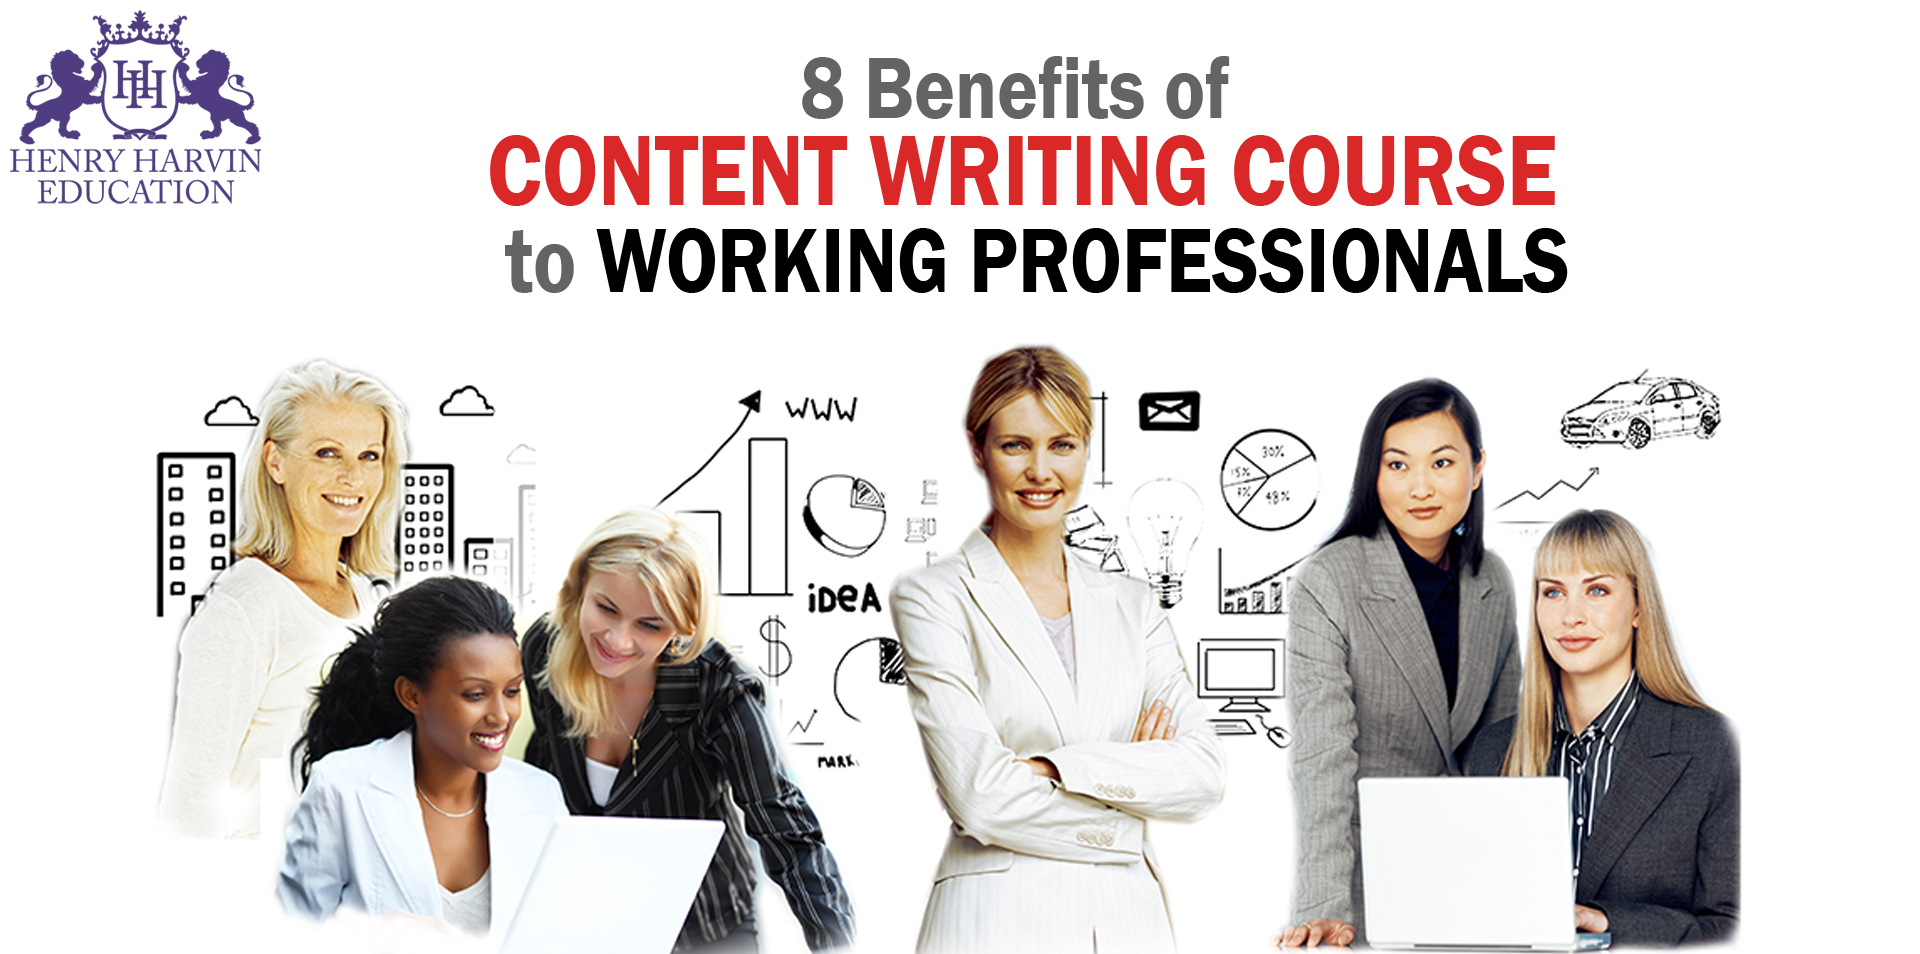 Professionals working happily and looking forward   8 Benefits of Content Writing Course to Working Professionals